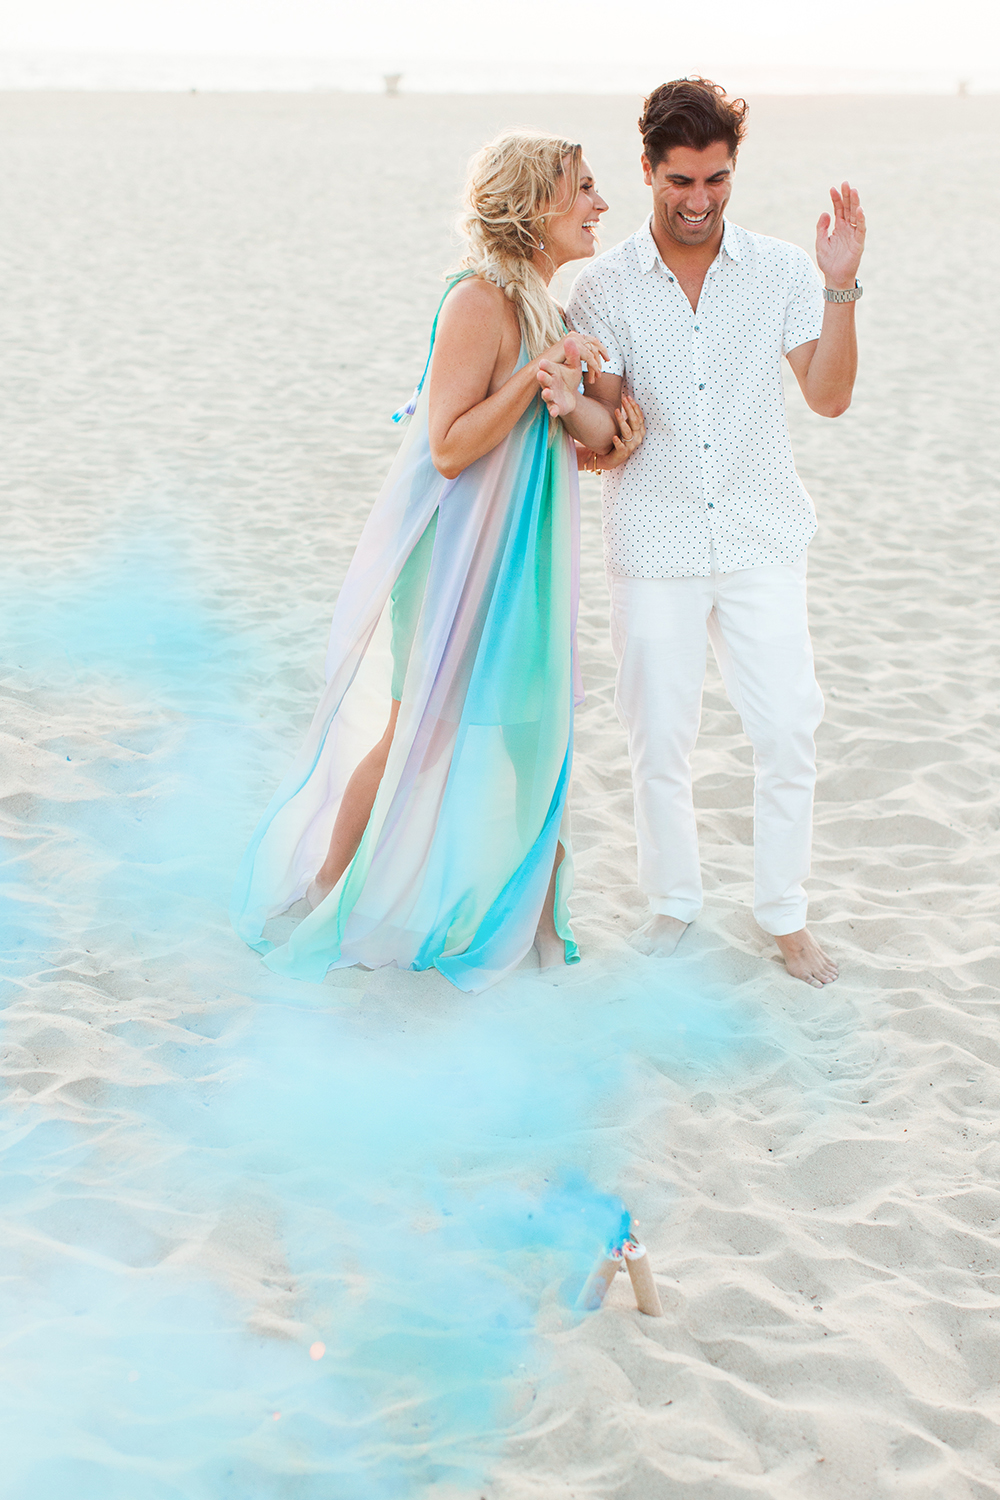 Beach boho gender reveal party | Summer party ideas | 100 Layer Cakelet